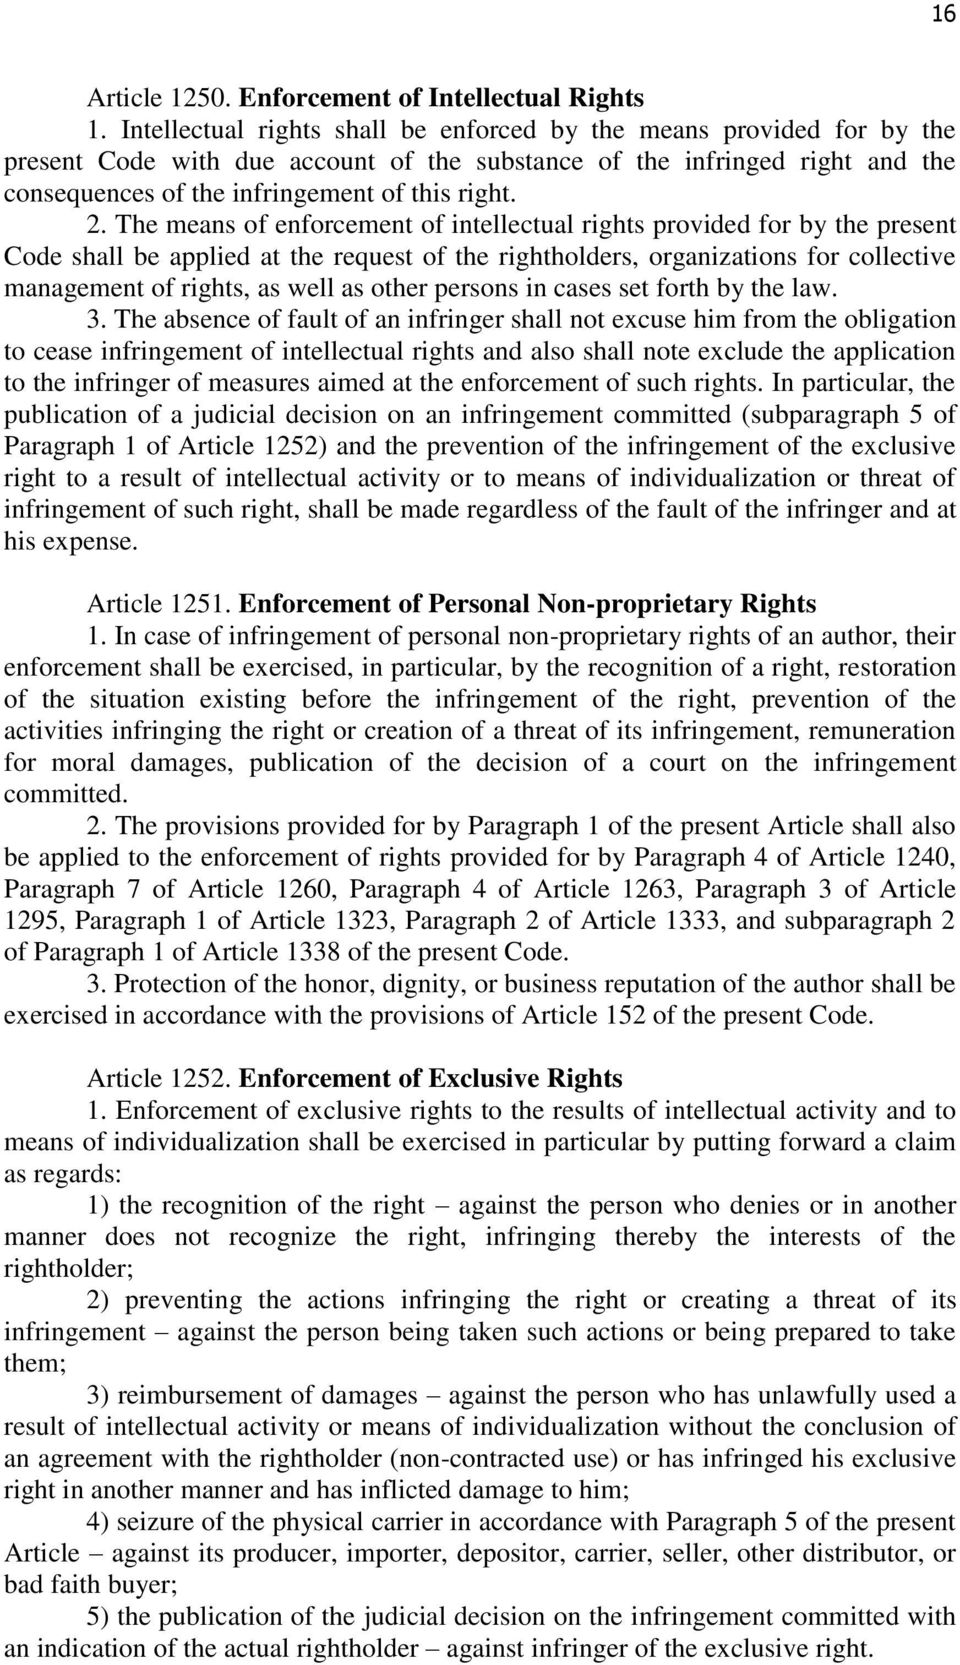 The means of enforcement of intellectual rights provided for by the present Code shall be applied at the request of the rightholders, organizations for collective management of rights, as well as